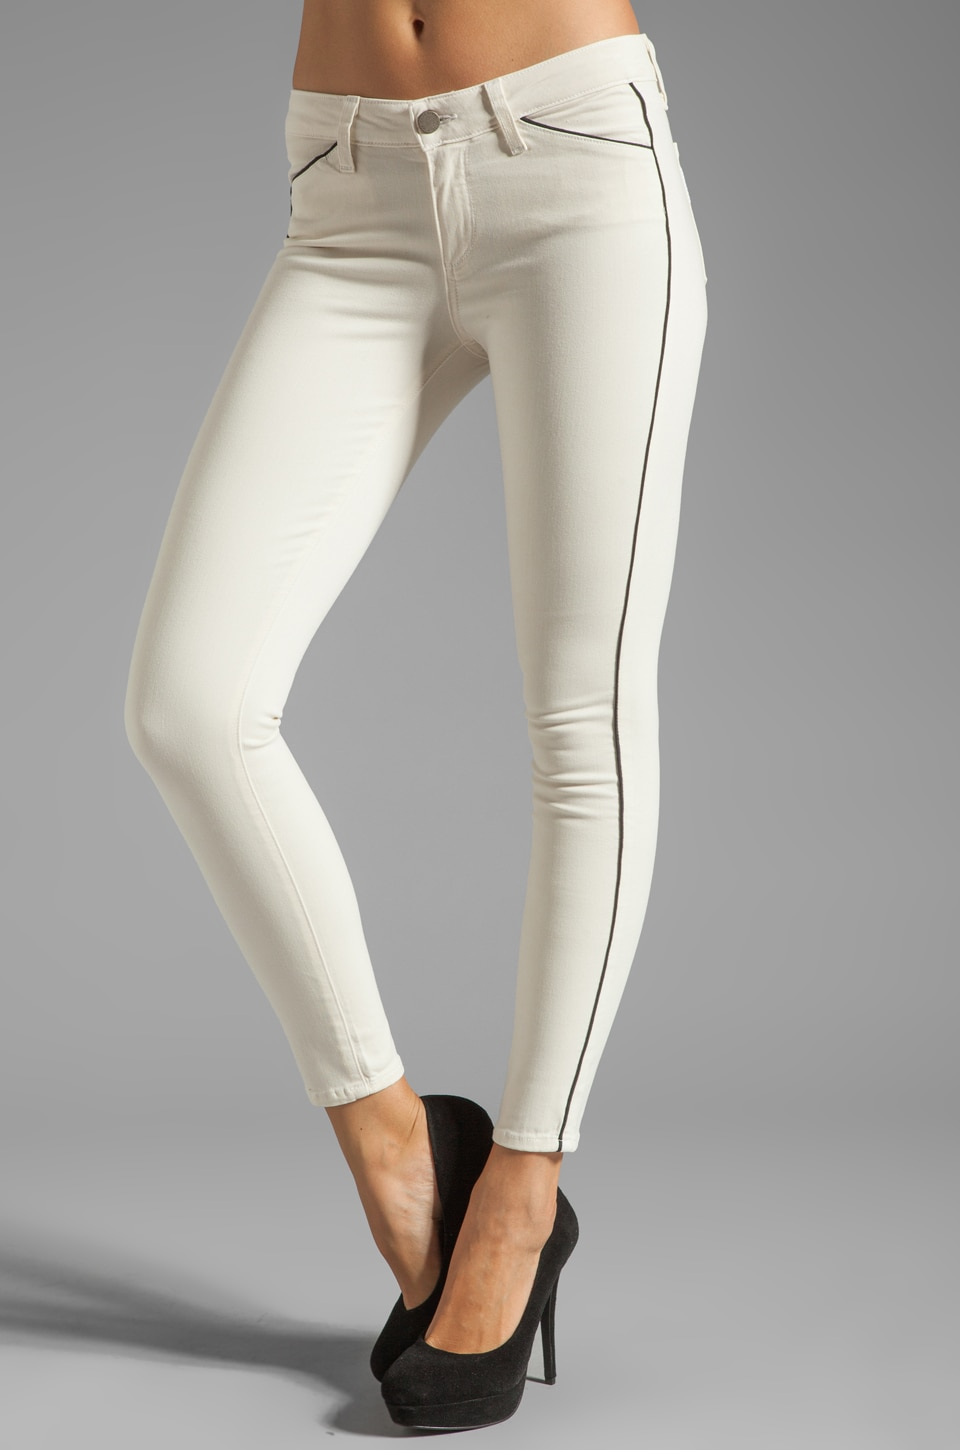 PAIGE Denim Pipeline Ultra Skinny in Cream/Black